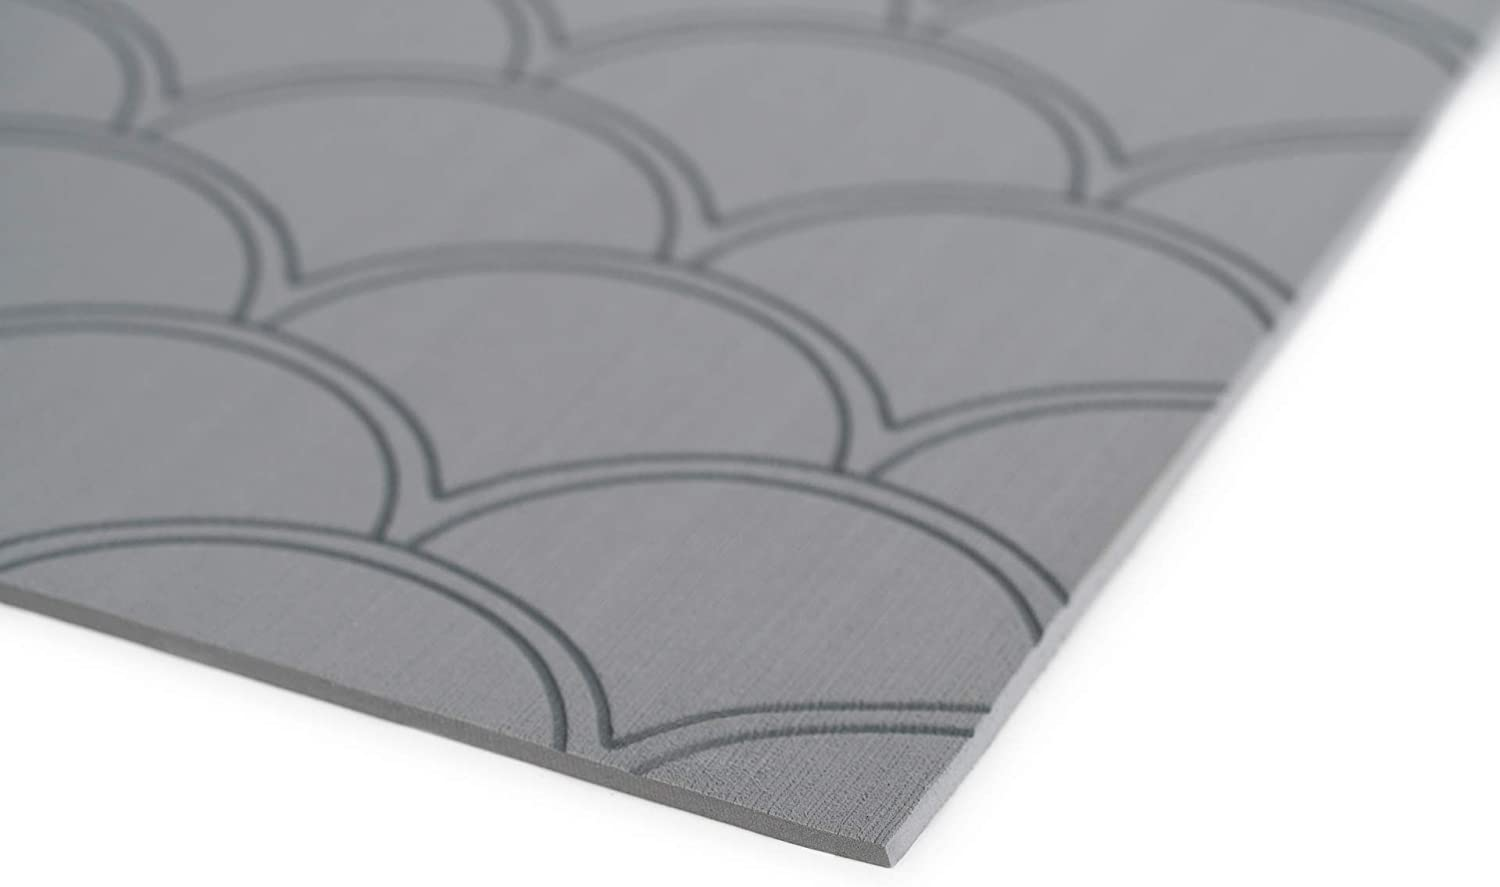 SeaDek Brushed Sheet Material Popular product with Special price for a limited time Laser Scales Fish Designer